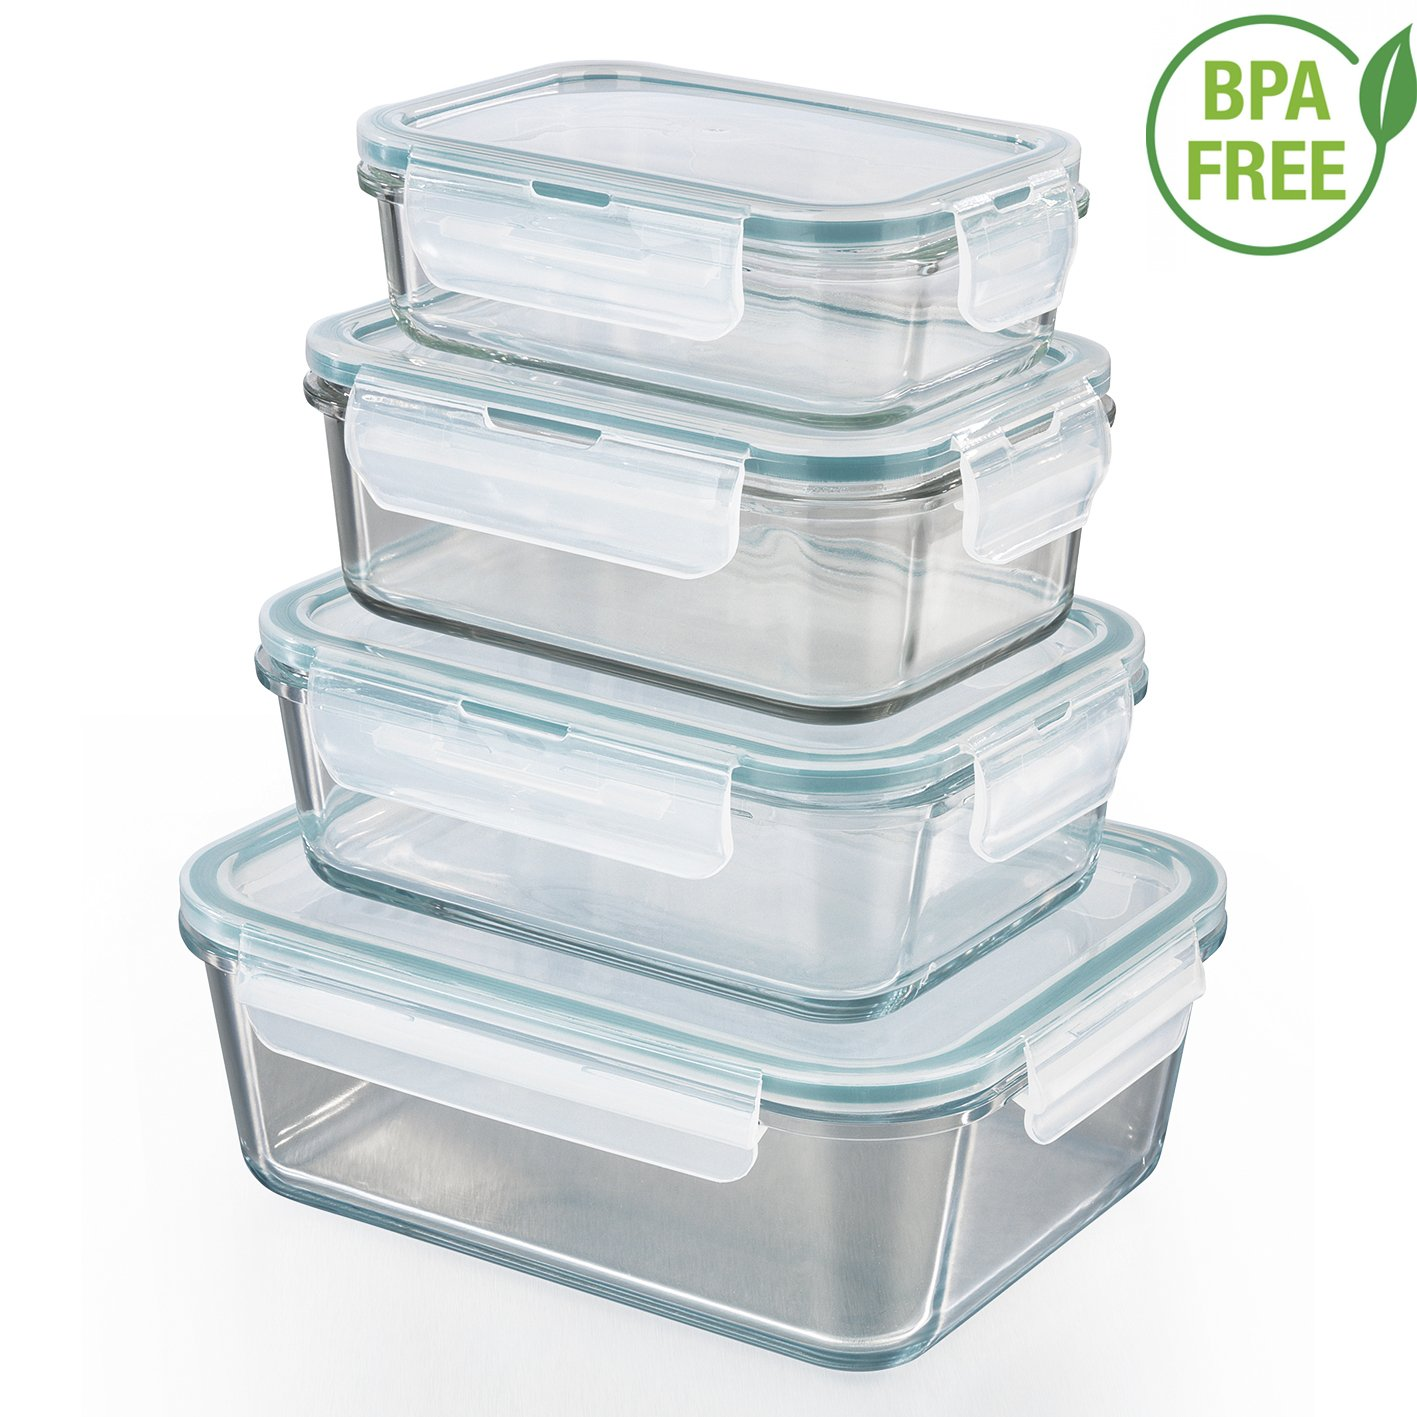 GOURMETmaxx 01821 Glass Food Storage Containers | Set of 4 Klick-It cans with lid | Silicone Sealing Ring | Glass container with lid | emerald